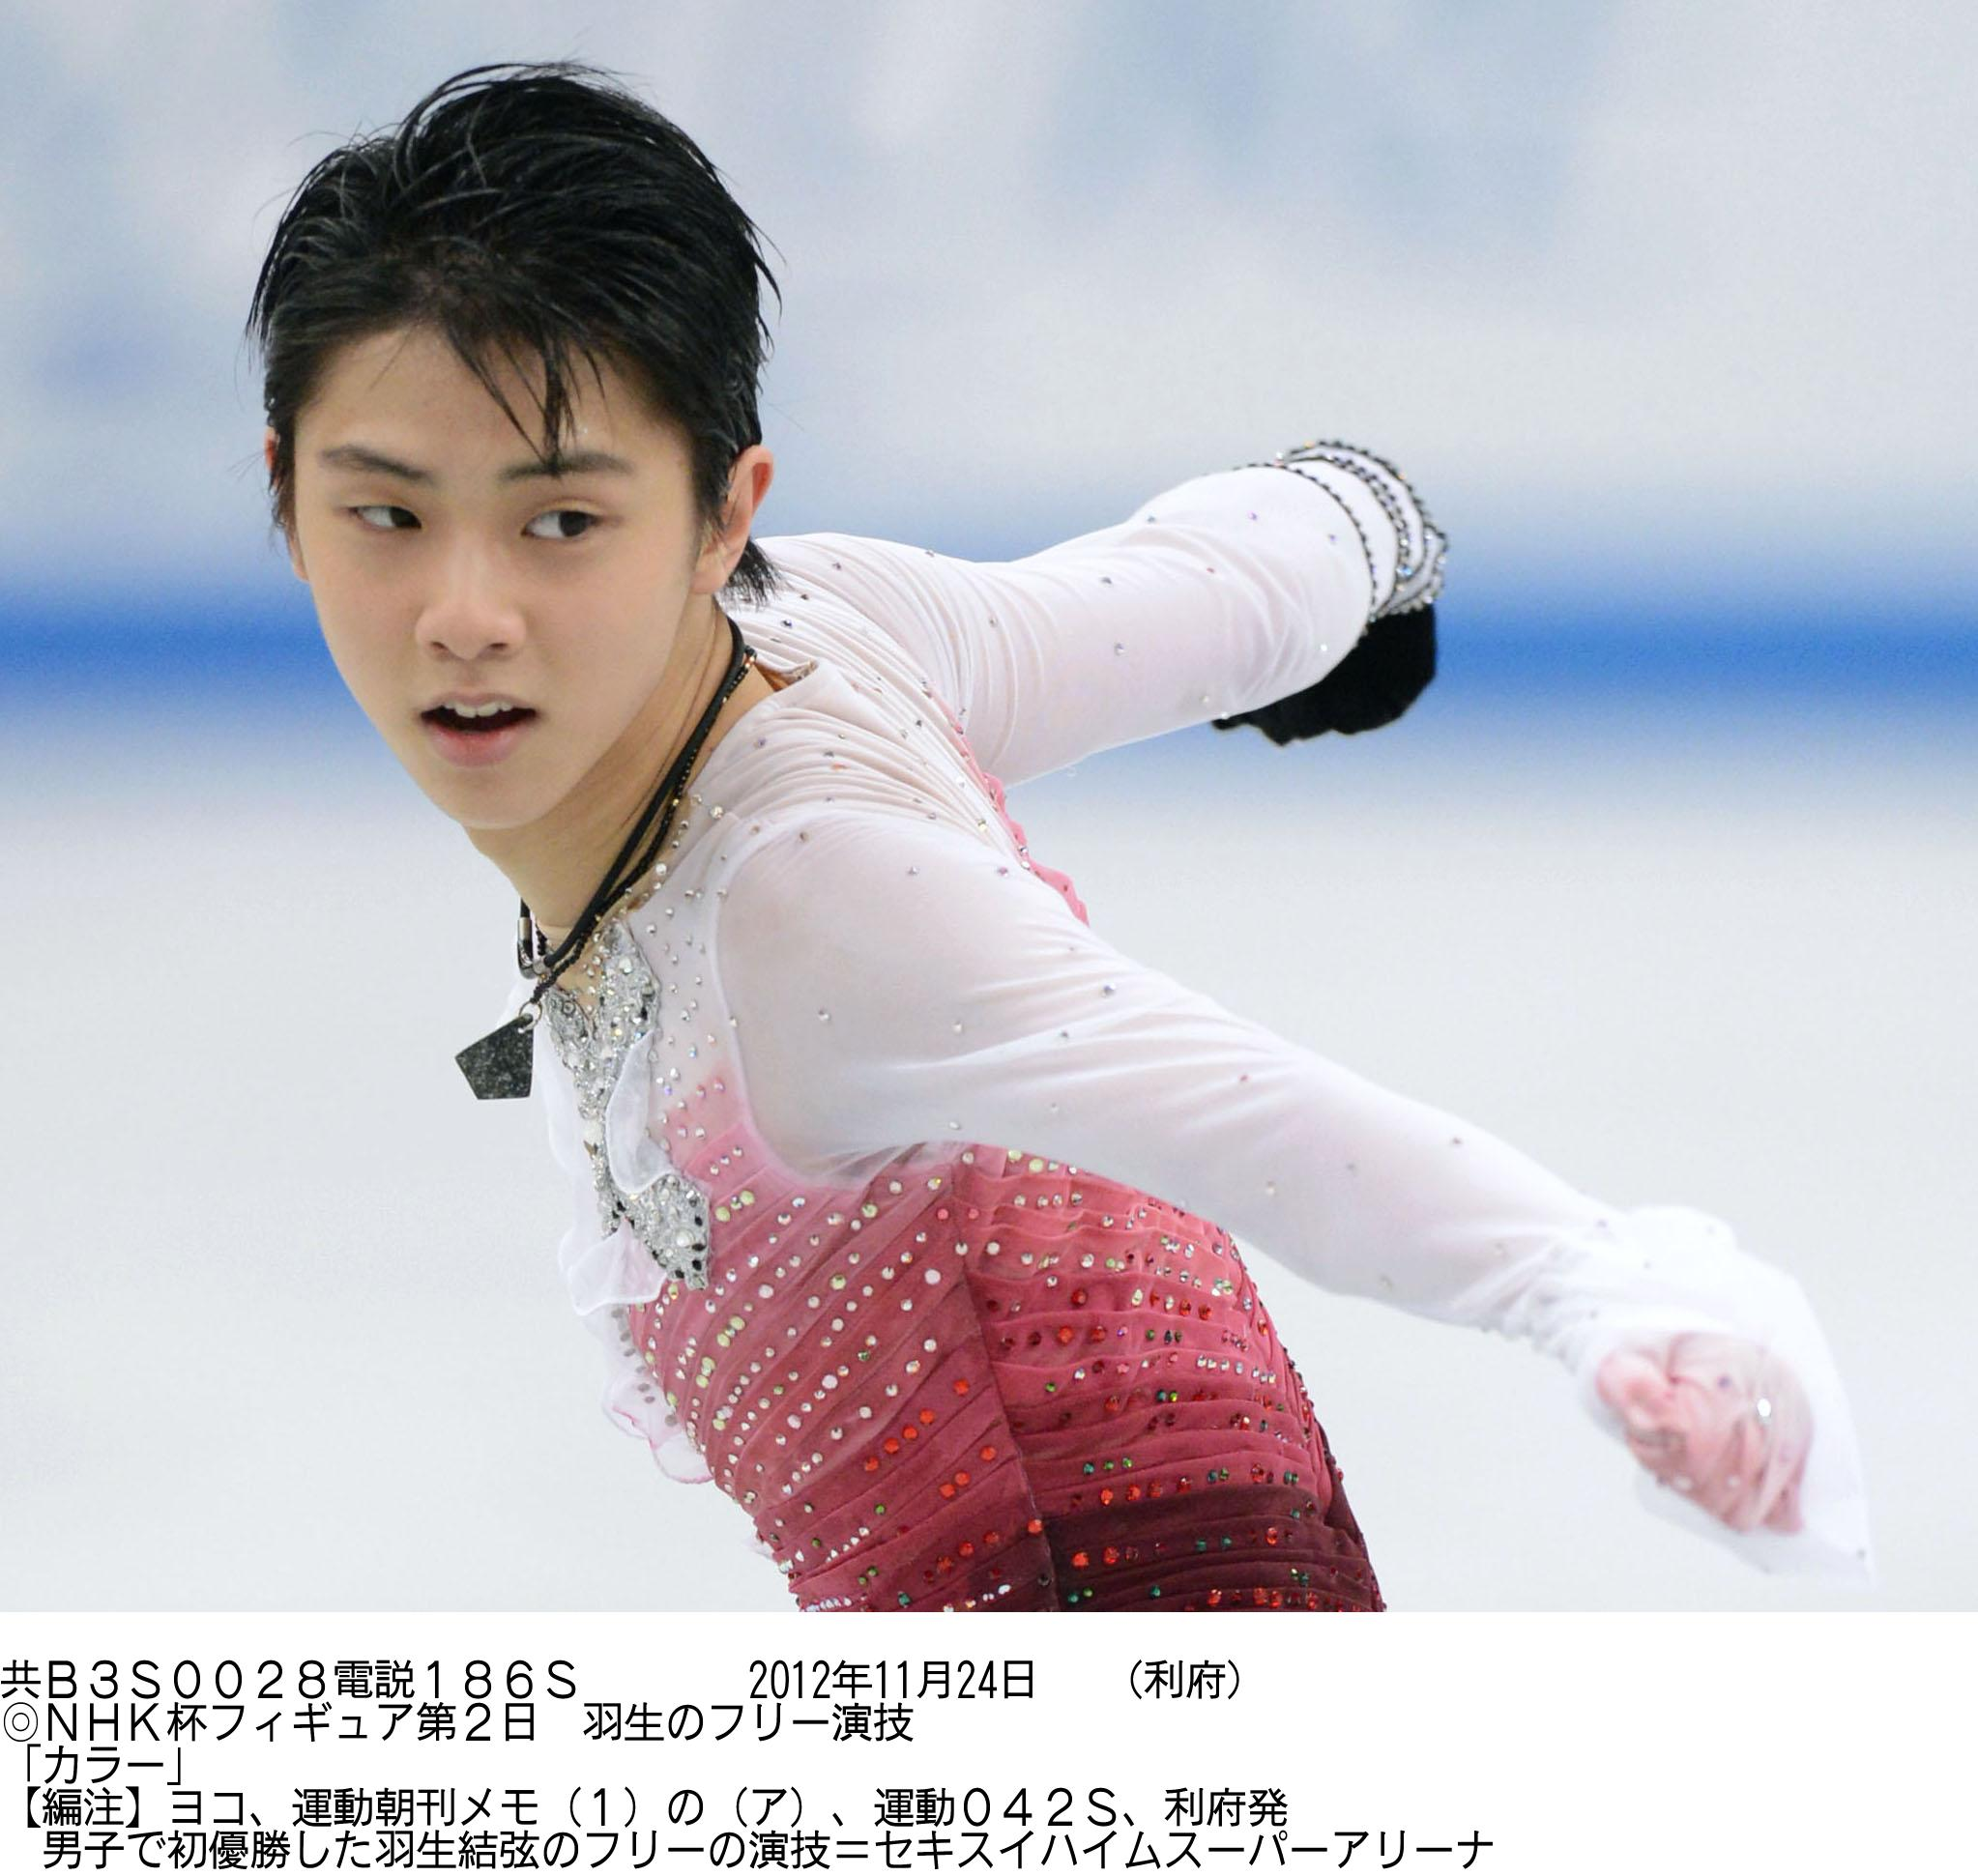 Hard work pays off: Daisuke Takahashi (above) and Akiko Suzuki both finished second overall in their respective competitions at the NHK Trophy on Saturday. | KYODO